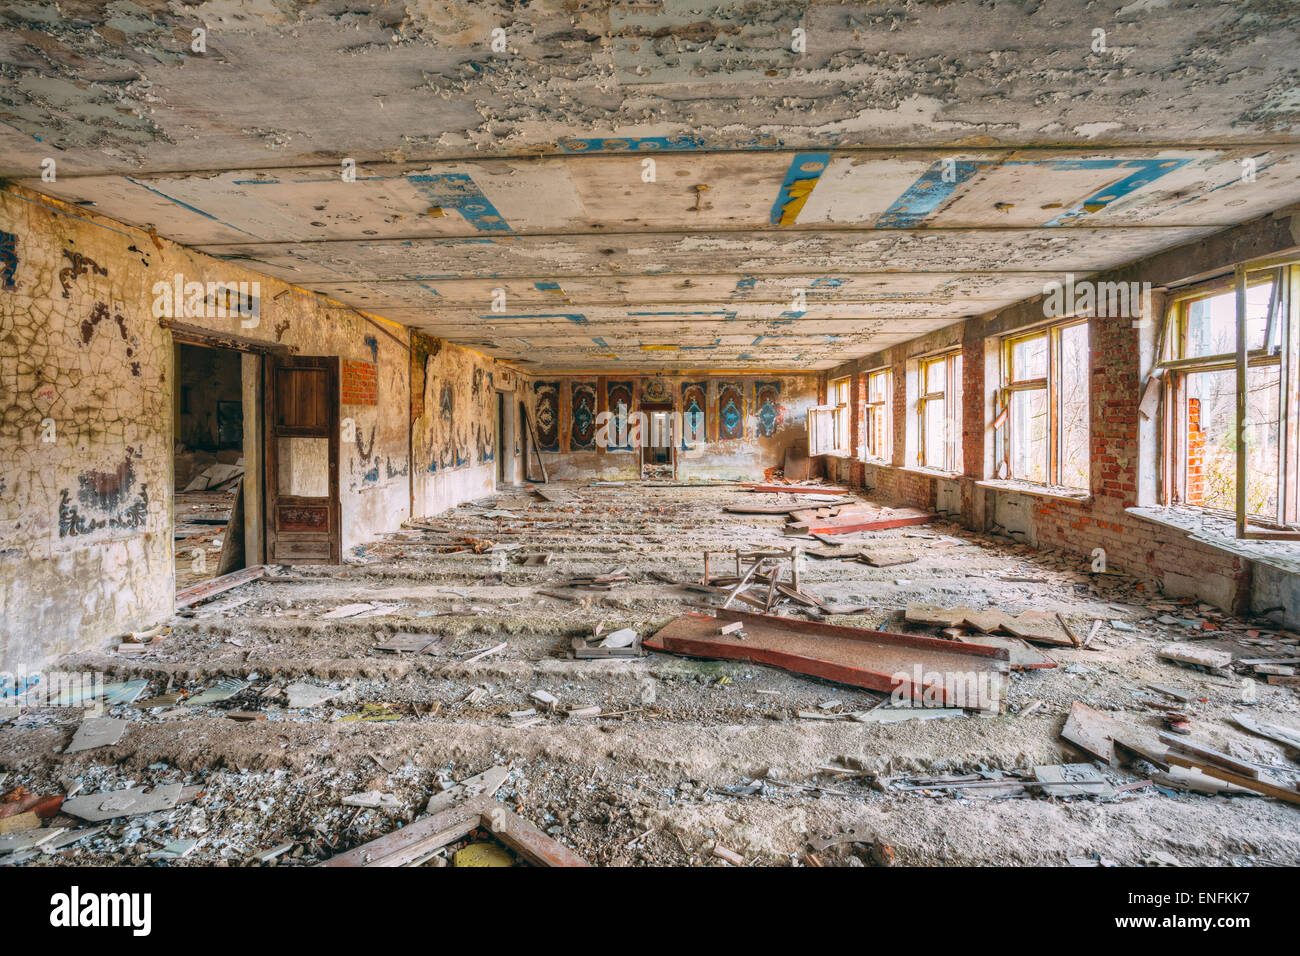 Abandoned Store Interior In Chernobyl Zone. Chornobyl Disasters - Stock Image